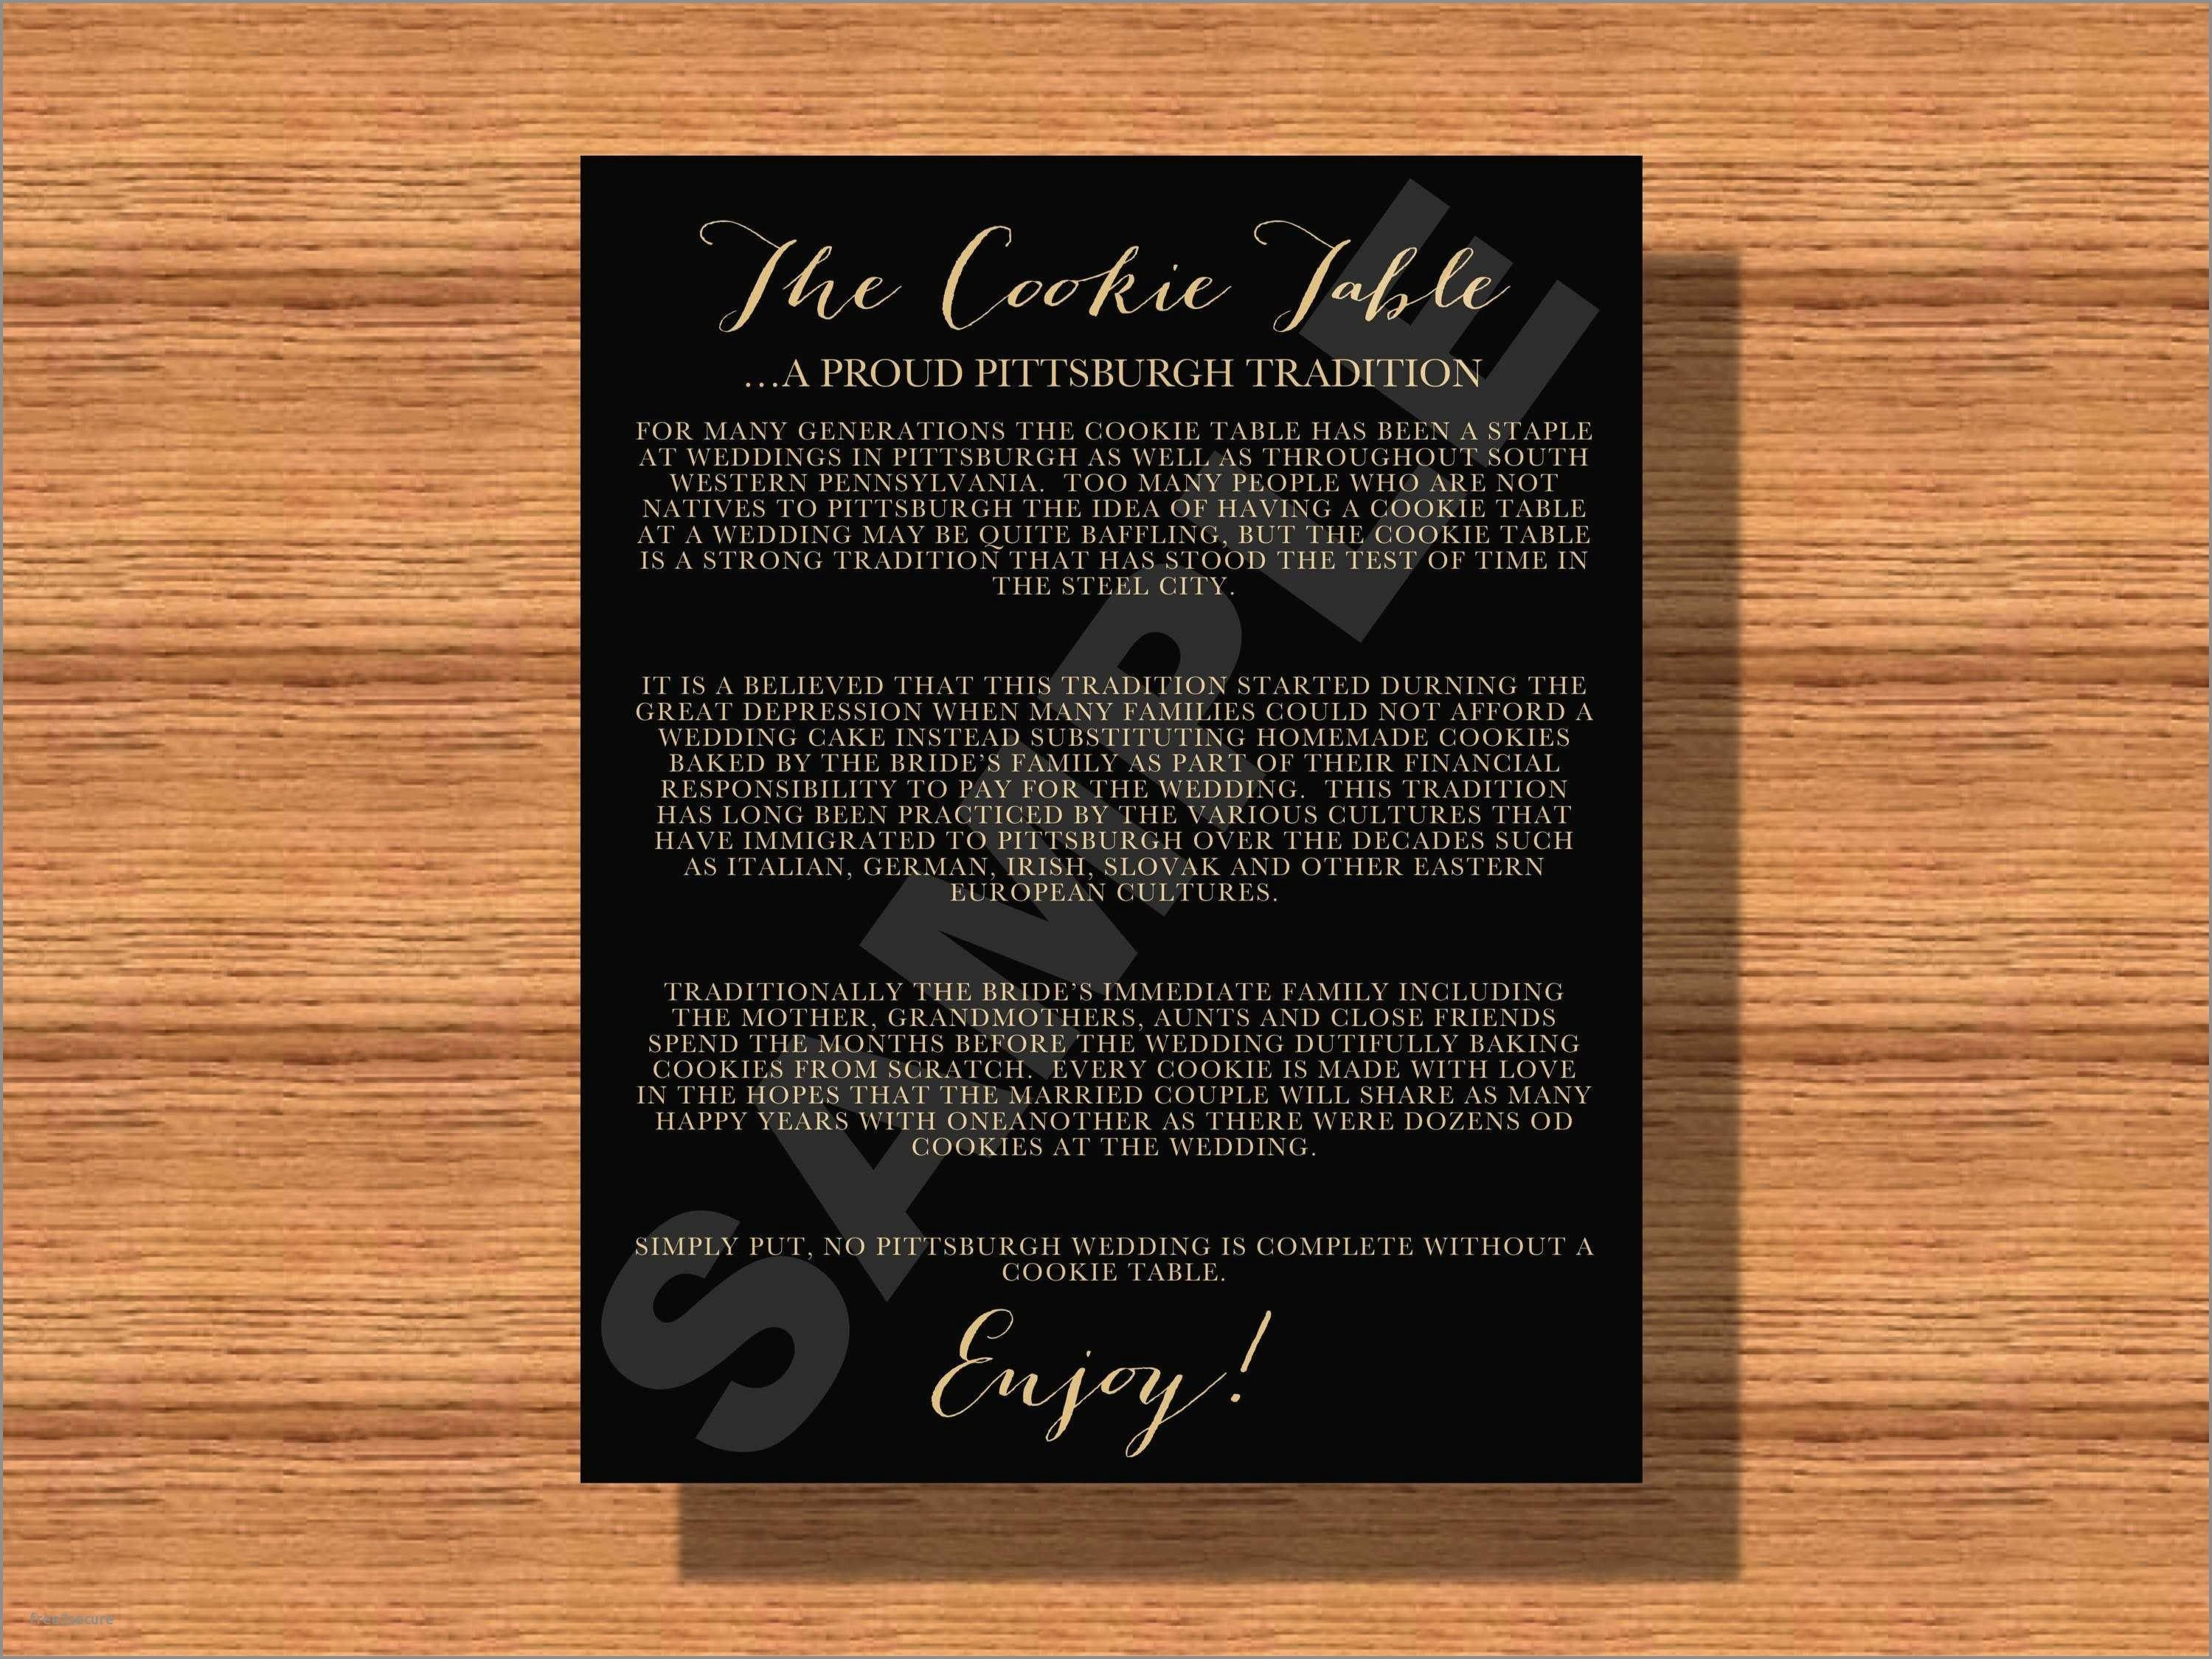 Golf Outing Invitation Template Fresh Luxury Golf themed